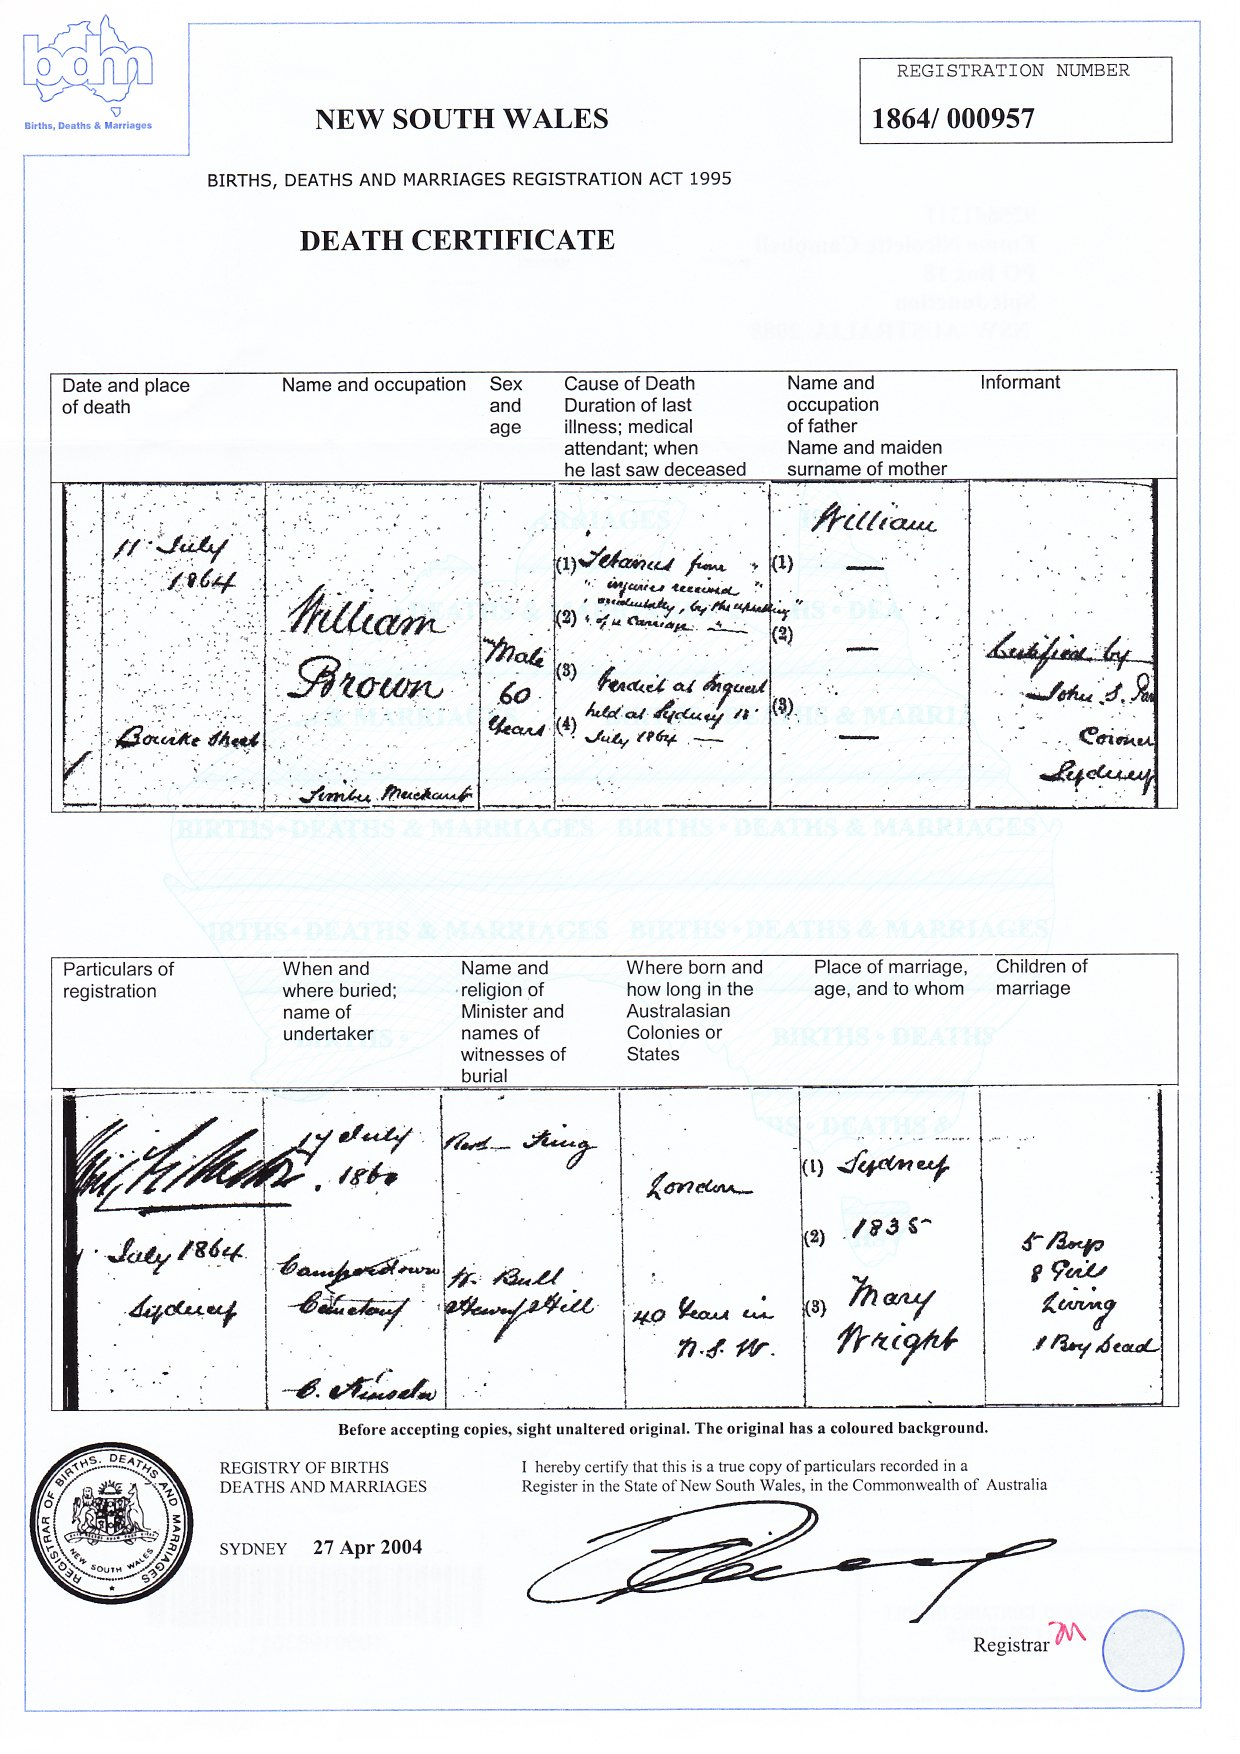 C:\Users\Virginia Rundle\Documents\Ancestry\Stewart Brown\William Brown Documents\Brown, William - Death Certificate 1864.jpg